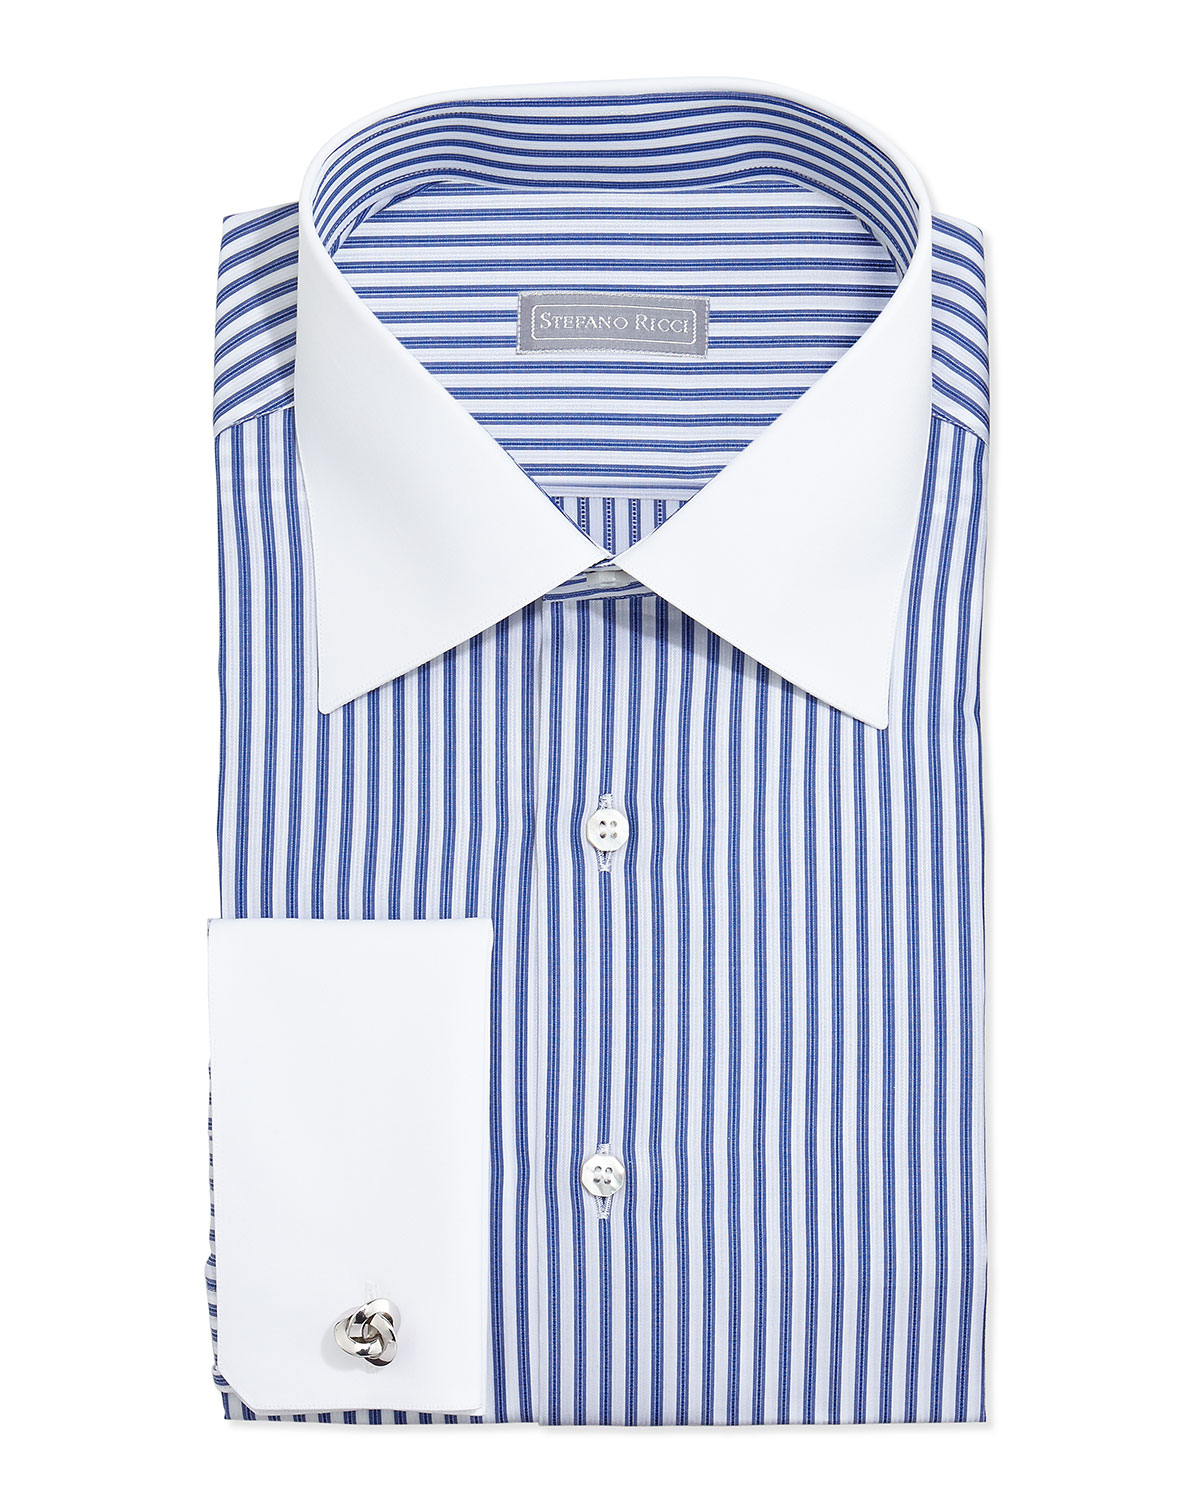 Stefano Ricci Contrast Stripe French Cuff Dress Shirt In